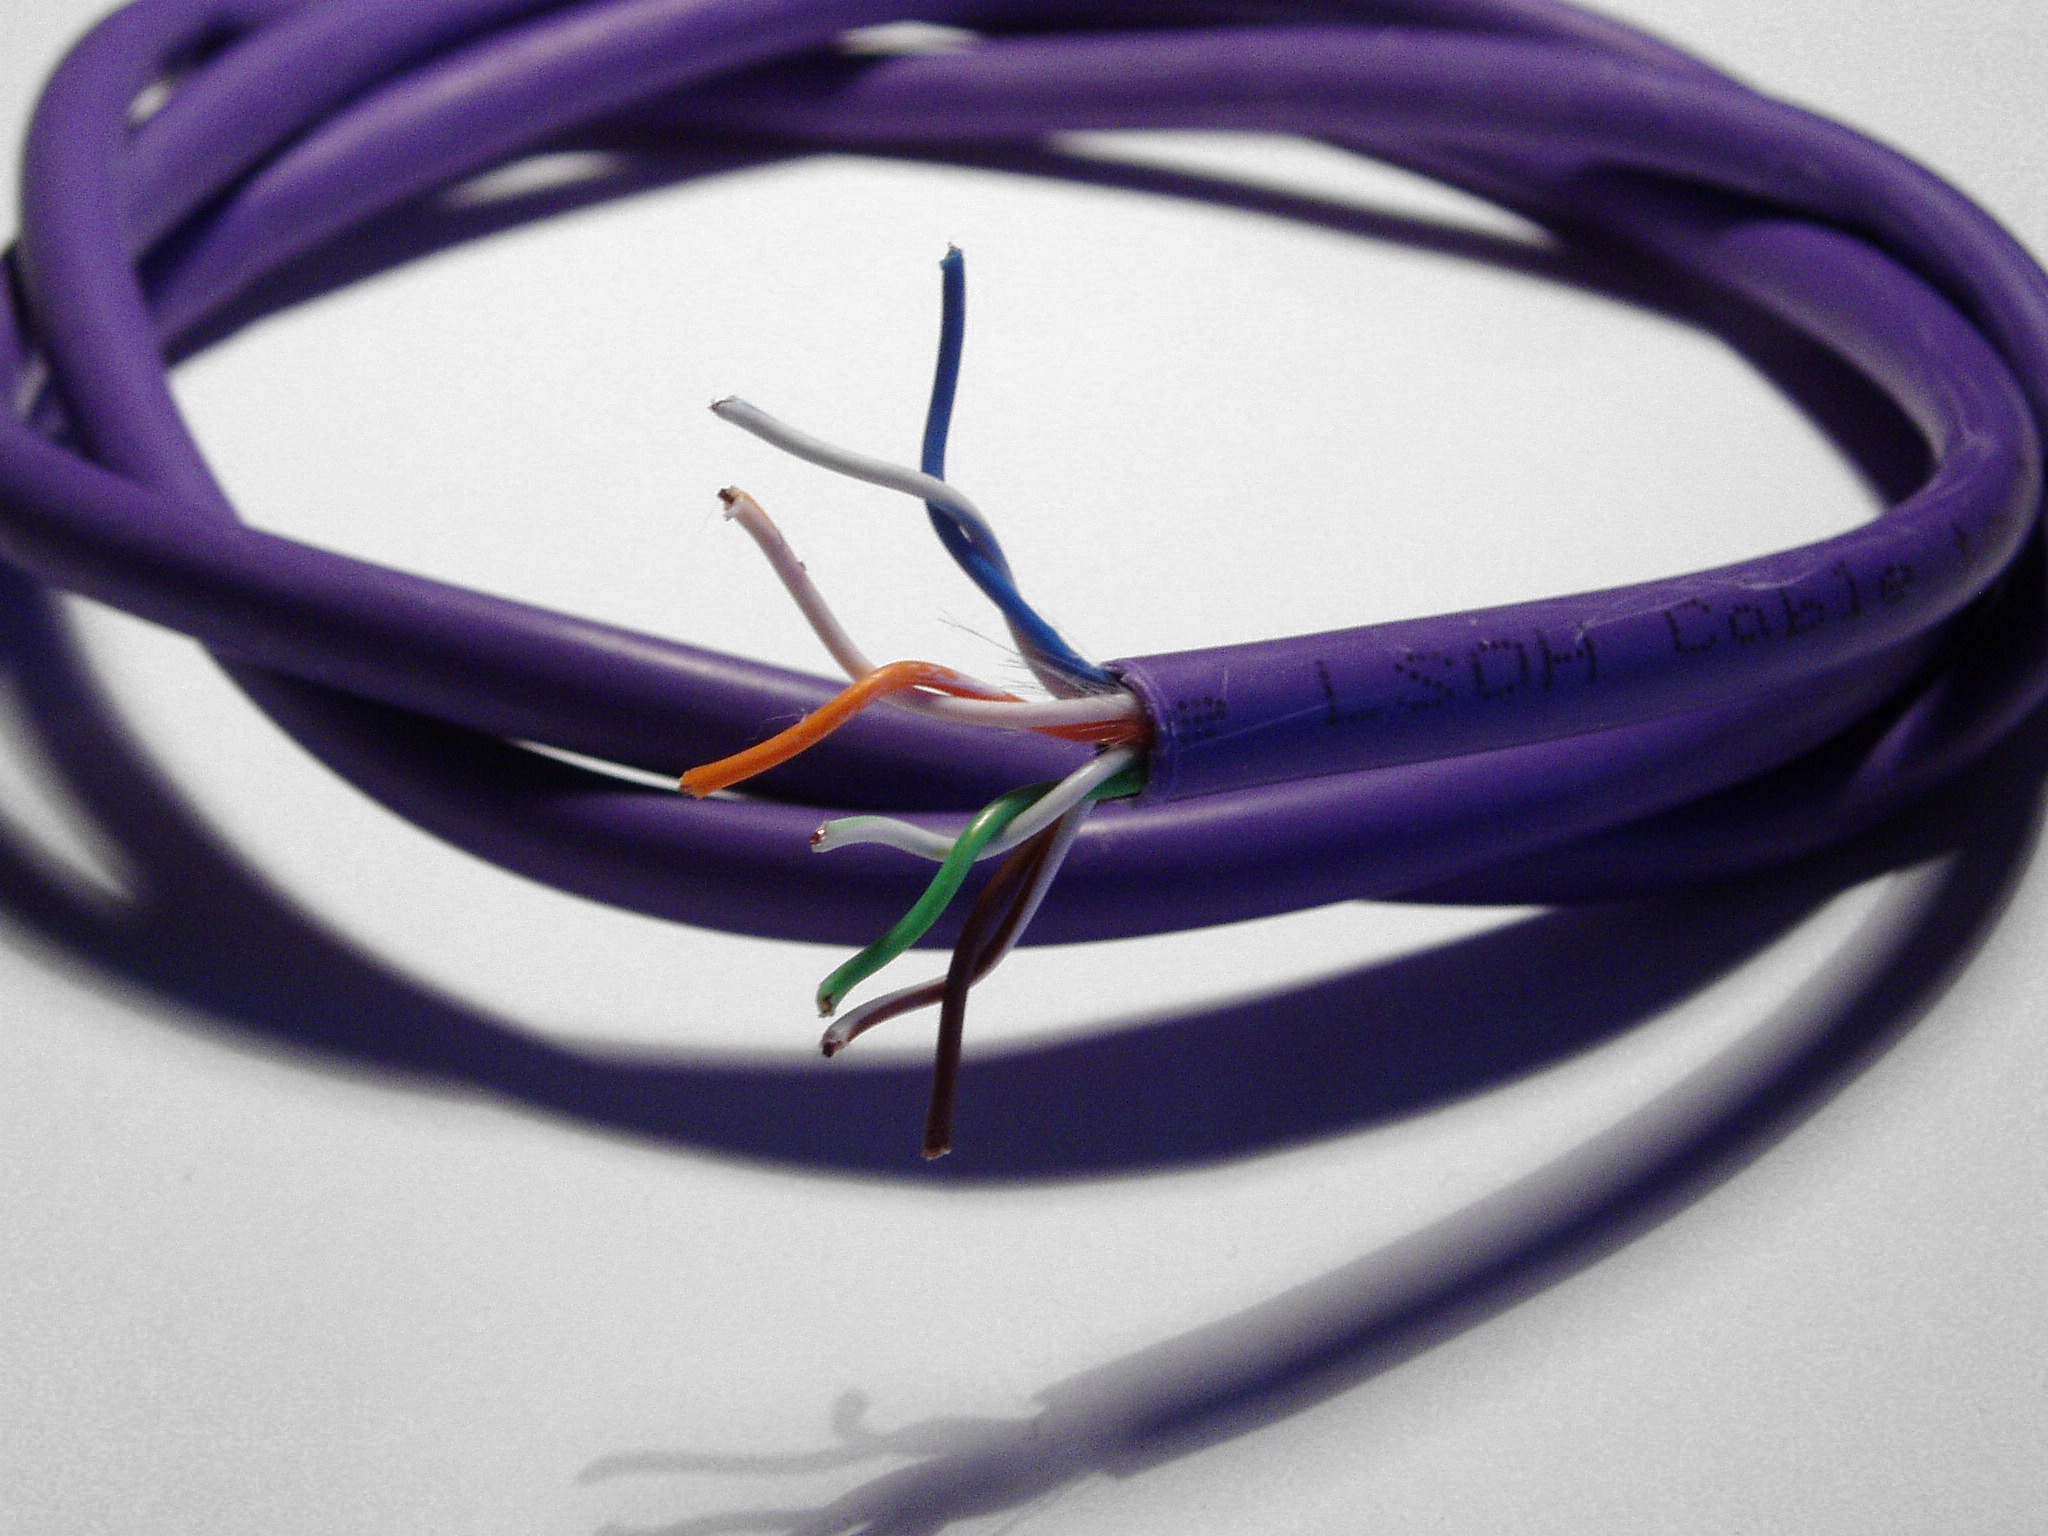 Category 5 Cable Wikipedia The Wiring Of Conductors To Rj45 Has Also Been Established By